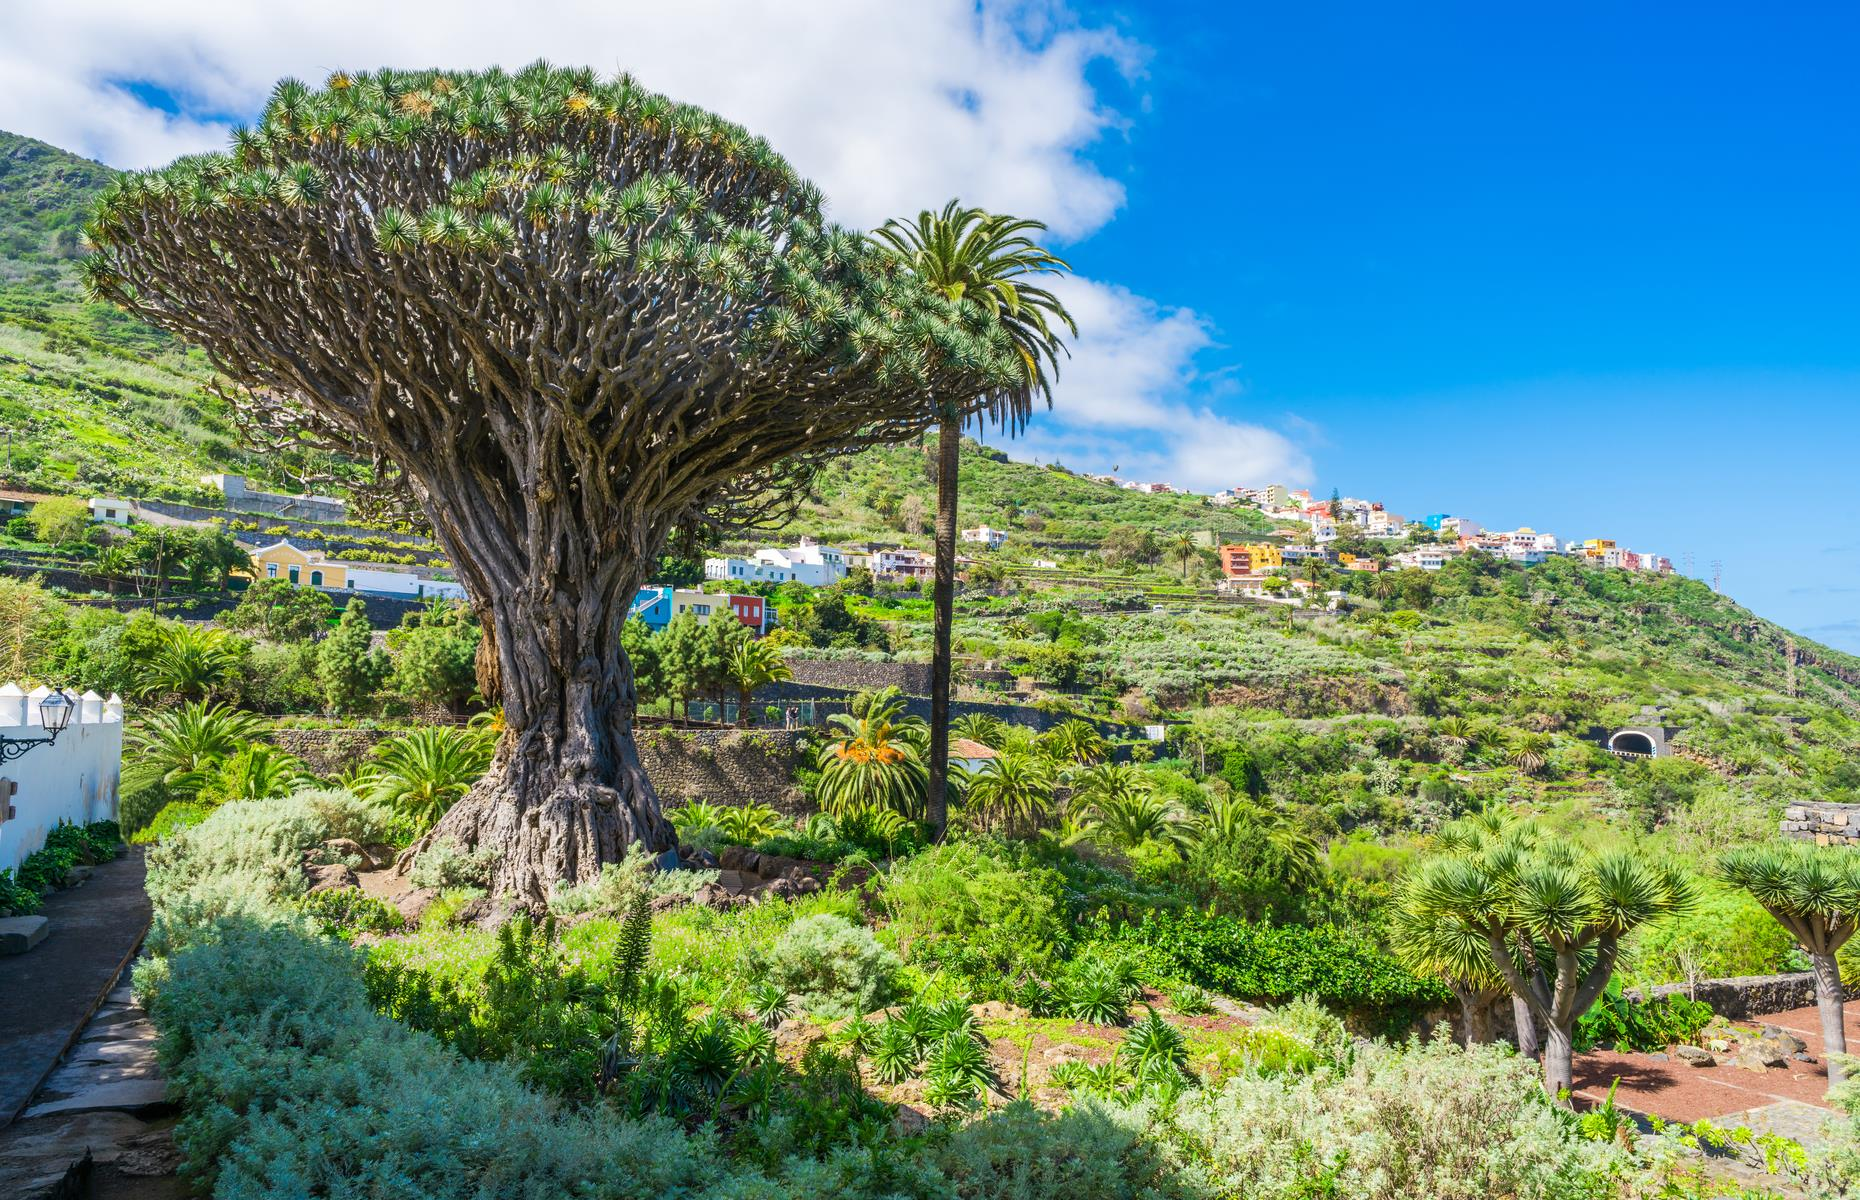 Slide 23 of 27: The island's most celebrated dragon tree –known as the Millennial Dragon Tree (Drago Milenario) –lies in the lush town of Icod de los Vinos in northern Tenerife. It's the largest and oldest tree of its kind, estimated to be around 1,000 years old.